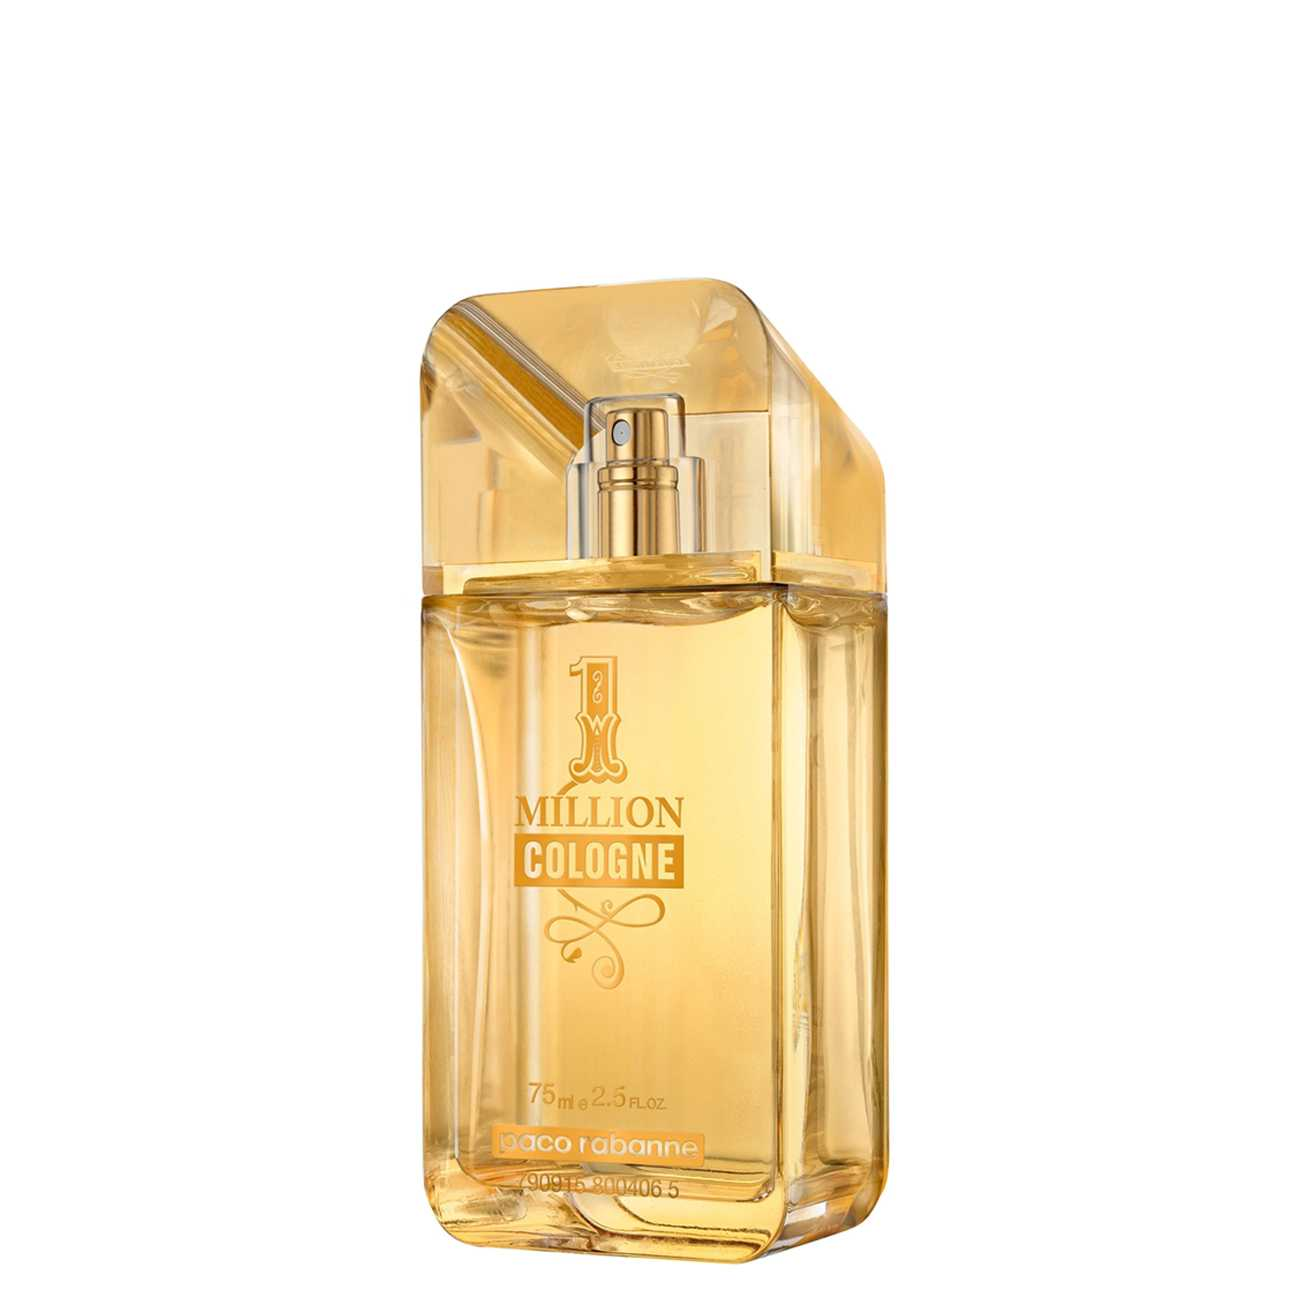 1 MILLION COLOGNE 75ml imagine produs